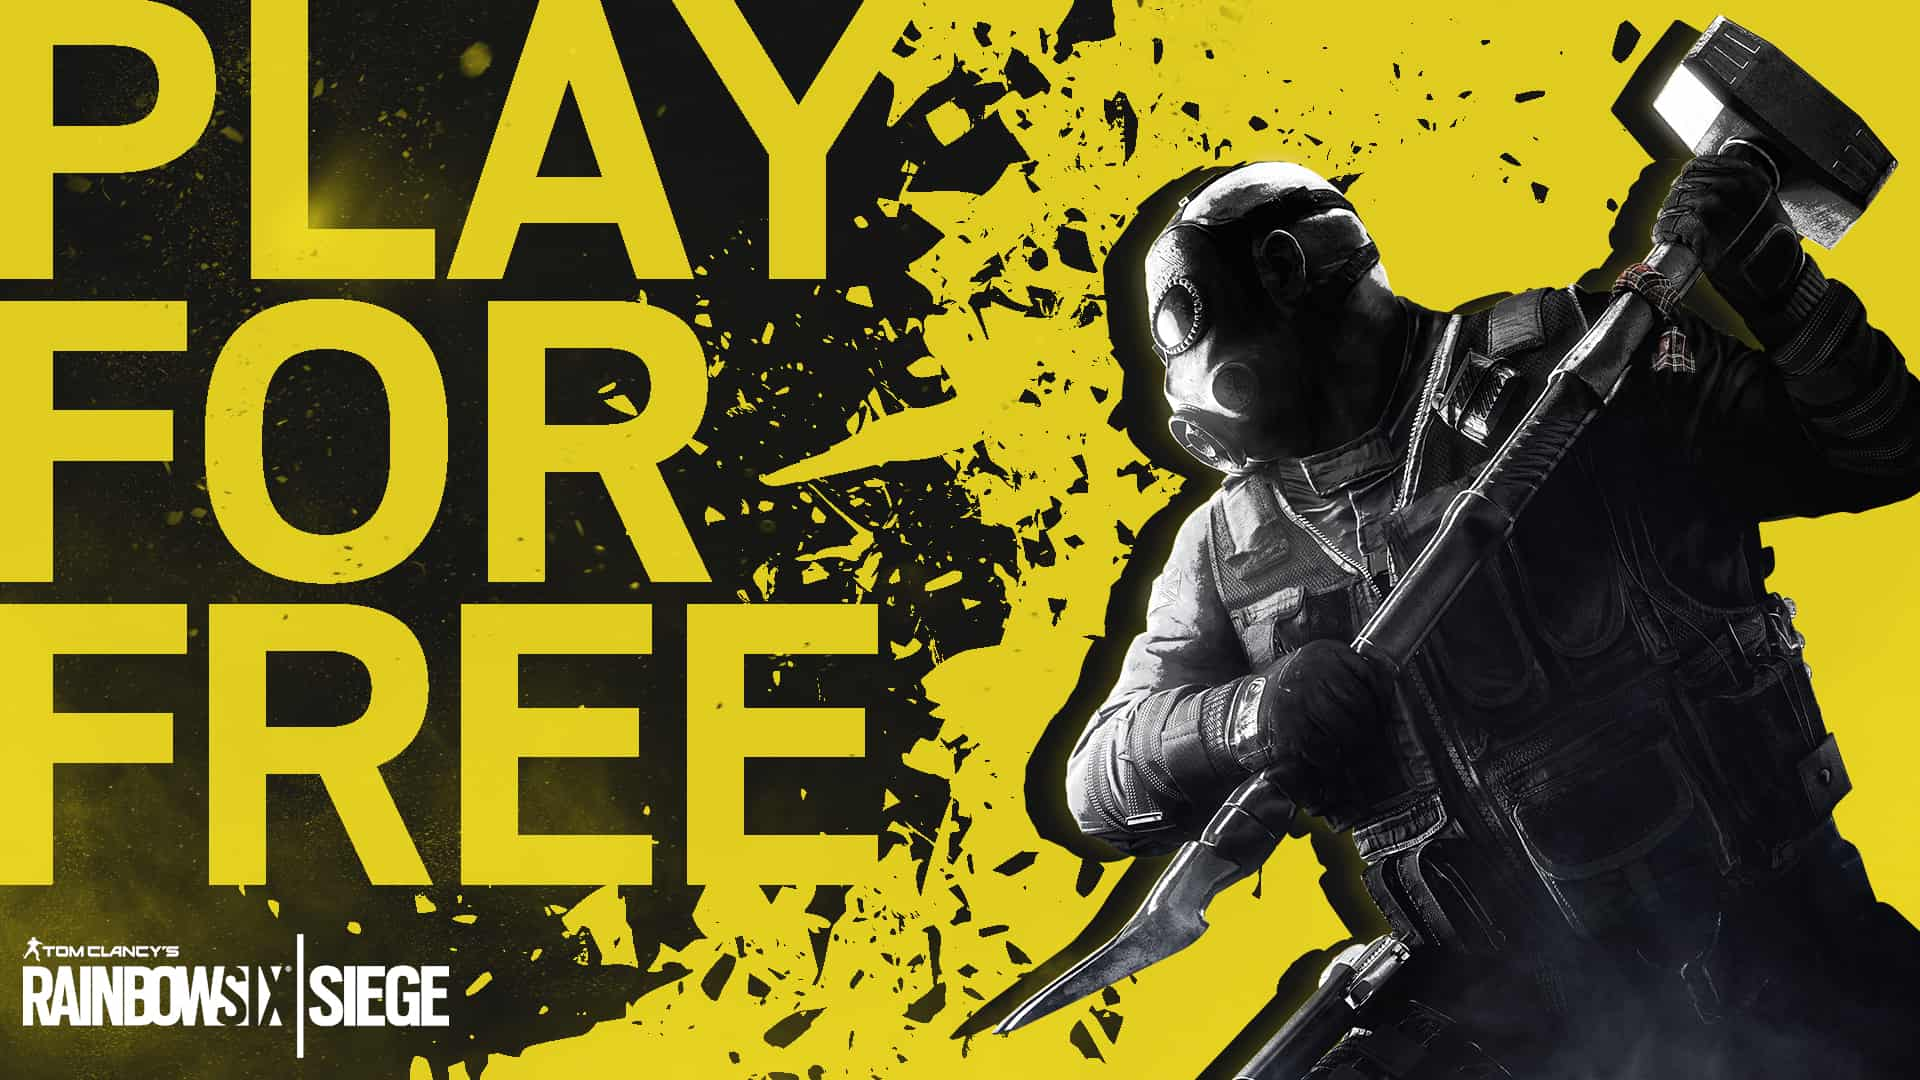 Tom Clancy's Rainbow Six Siege Announces Free Play Week Starting August 28th